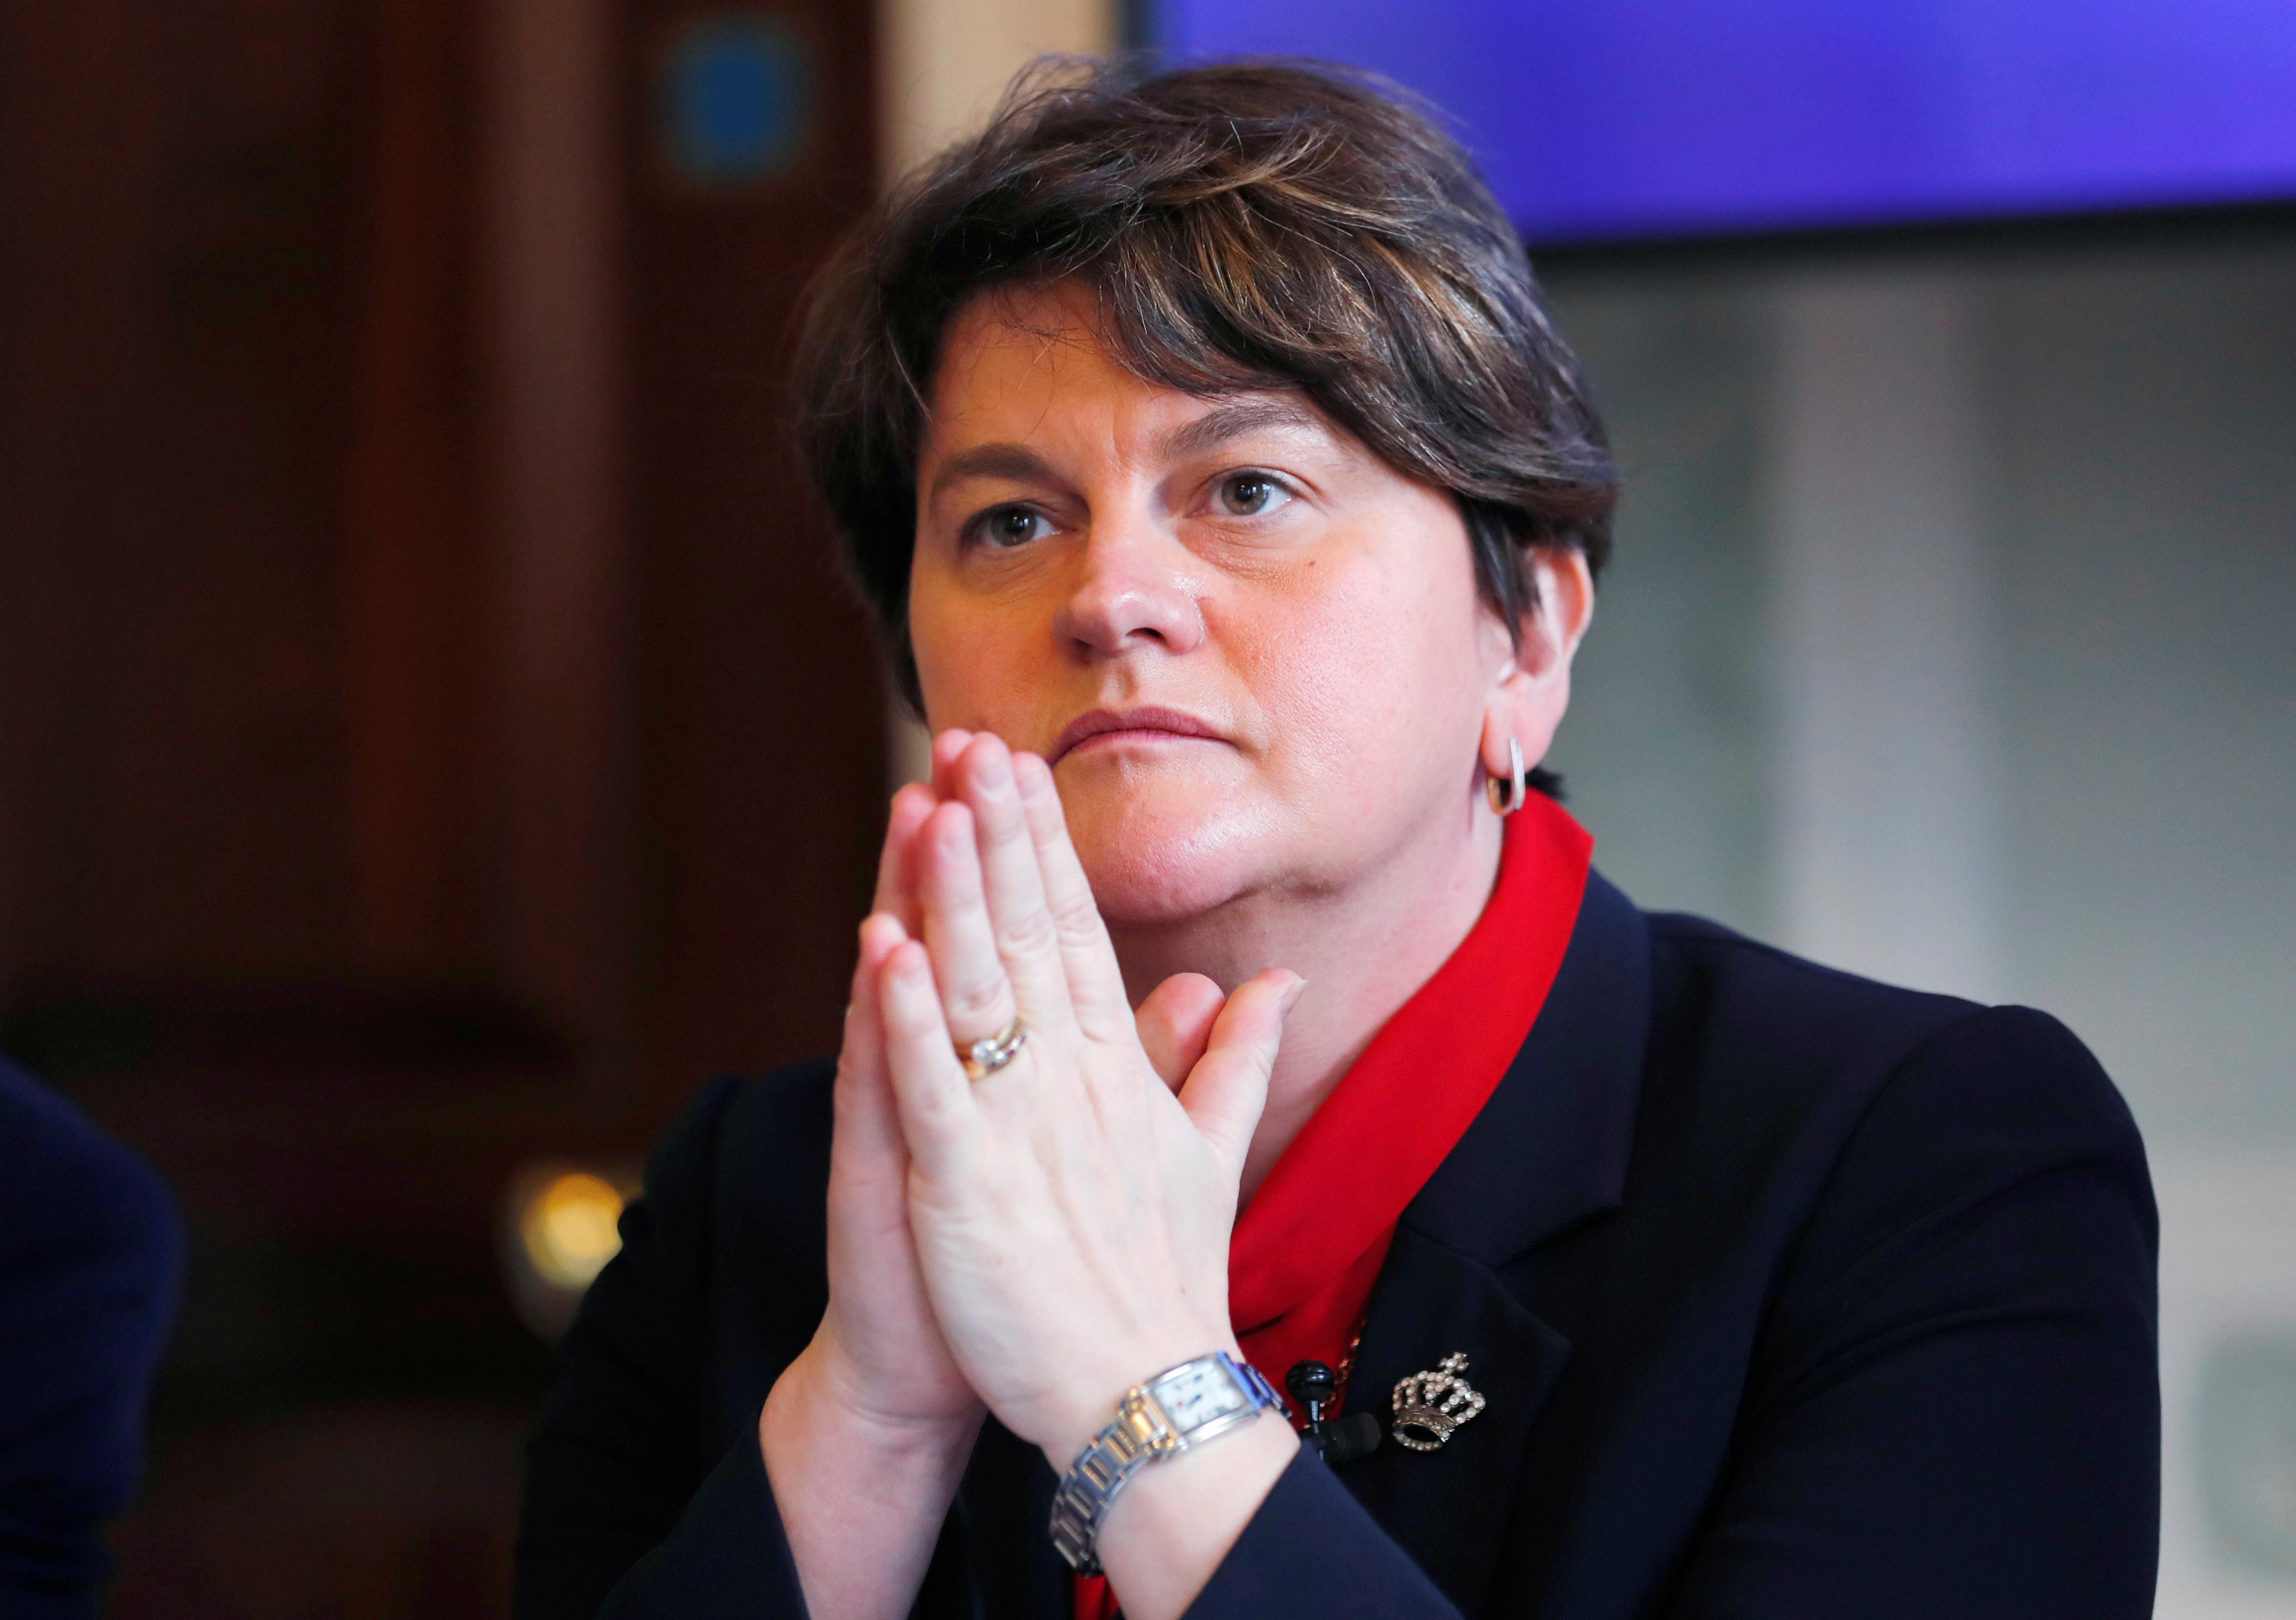 01ed76fcf6d4 LONDON (Reuters) – British Prime Minister Theresa May will meet with the  leader of Northern Ireland s Democratic Unionist Party Arlene Foster on  Wednesday ...